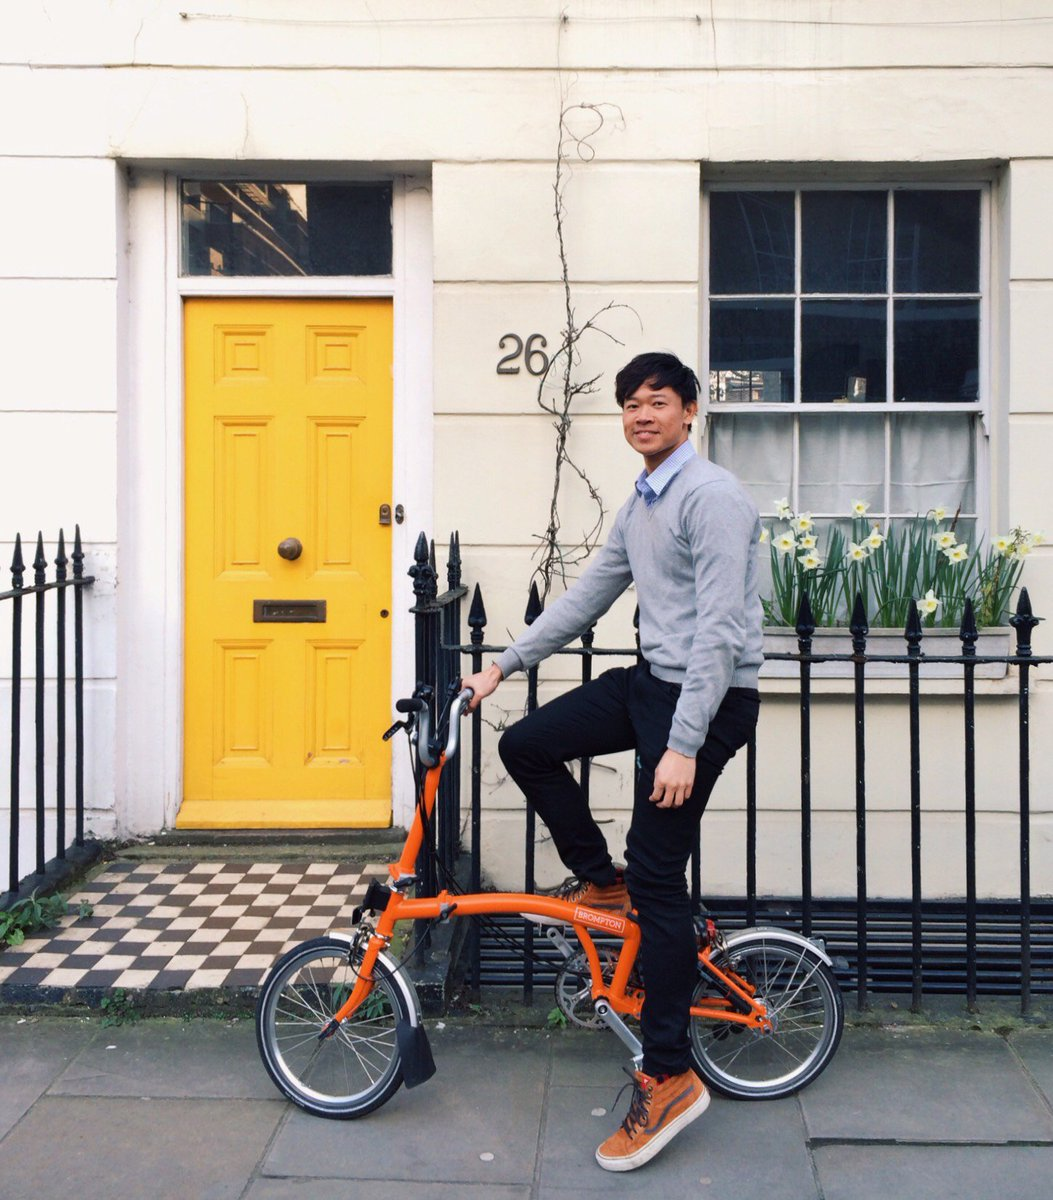 Congratulations to Ming on winning #Build&Win last year. Here's a photo of him enjoying his Orange Brompton! https://t.co/7MINp8IQQi